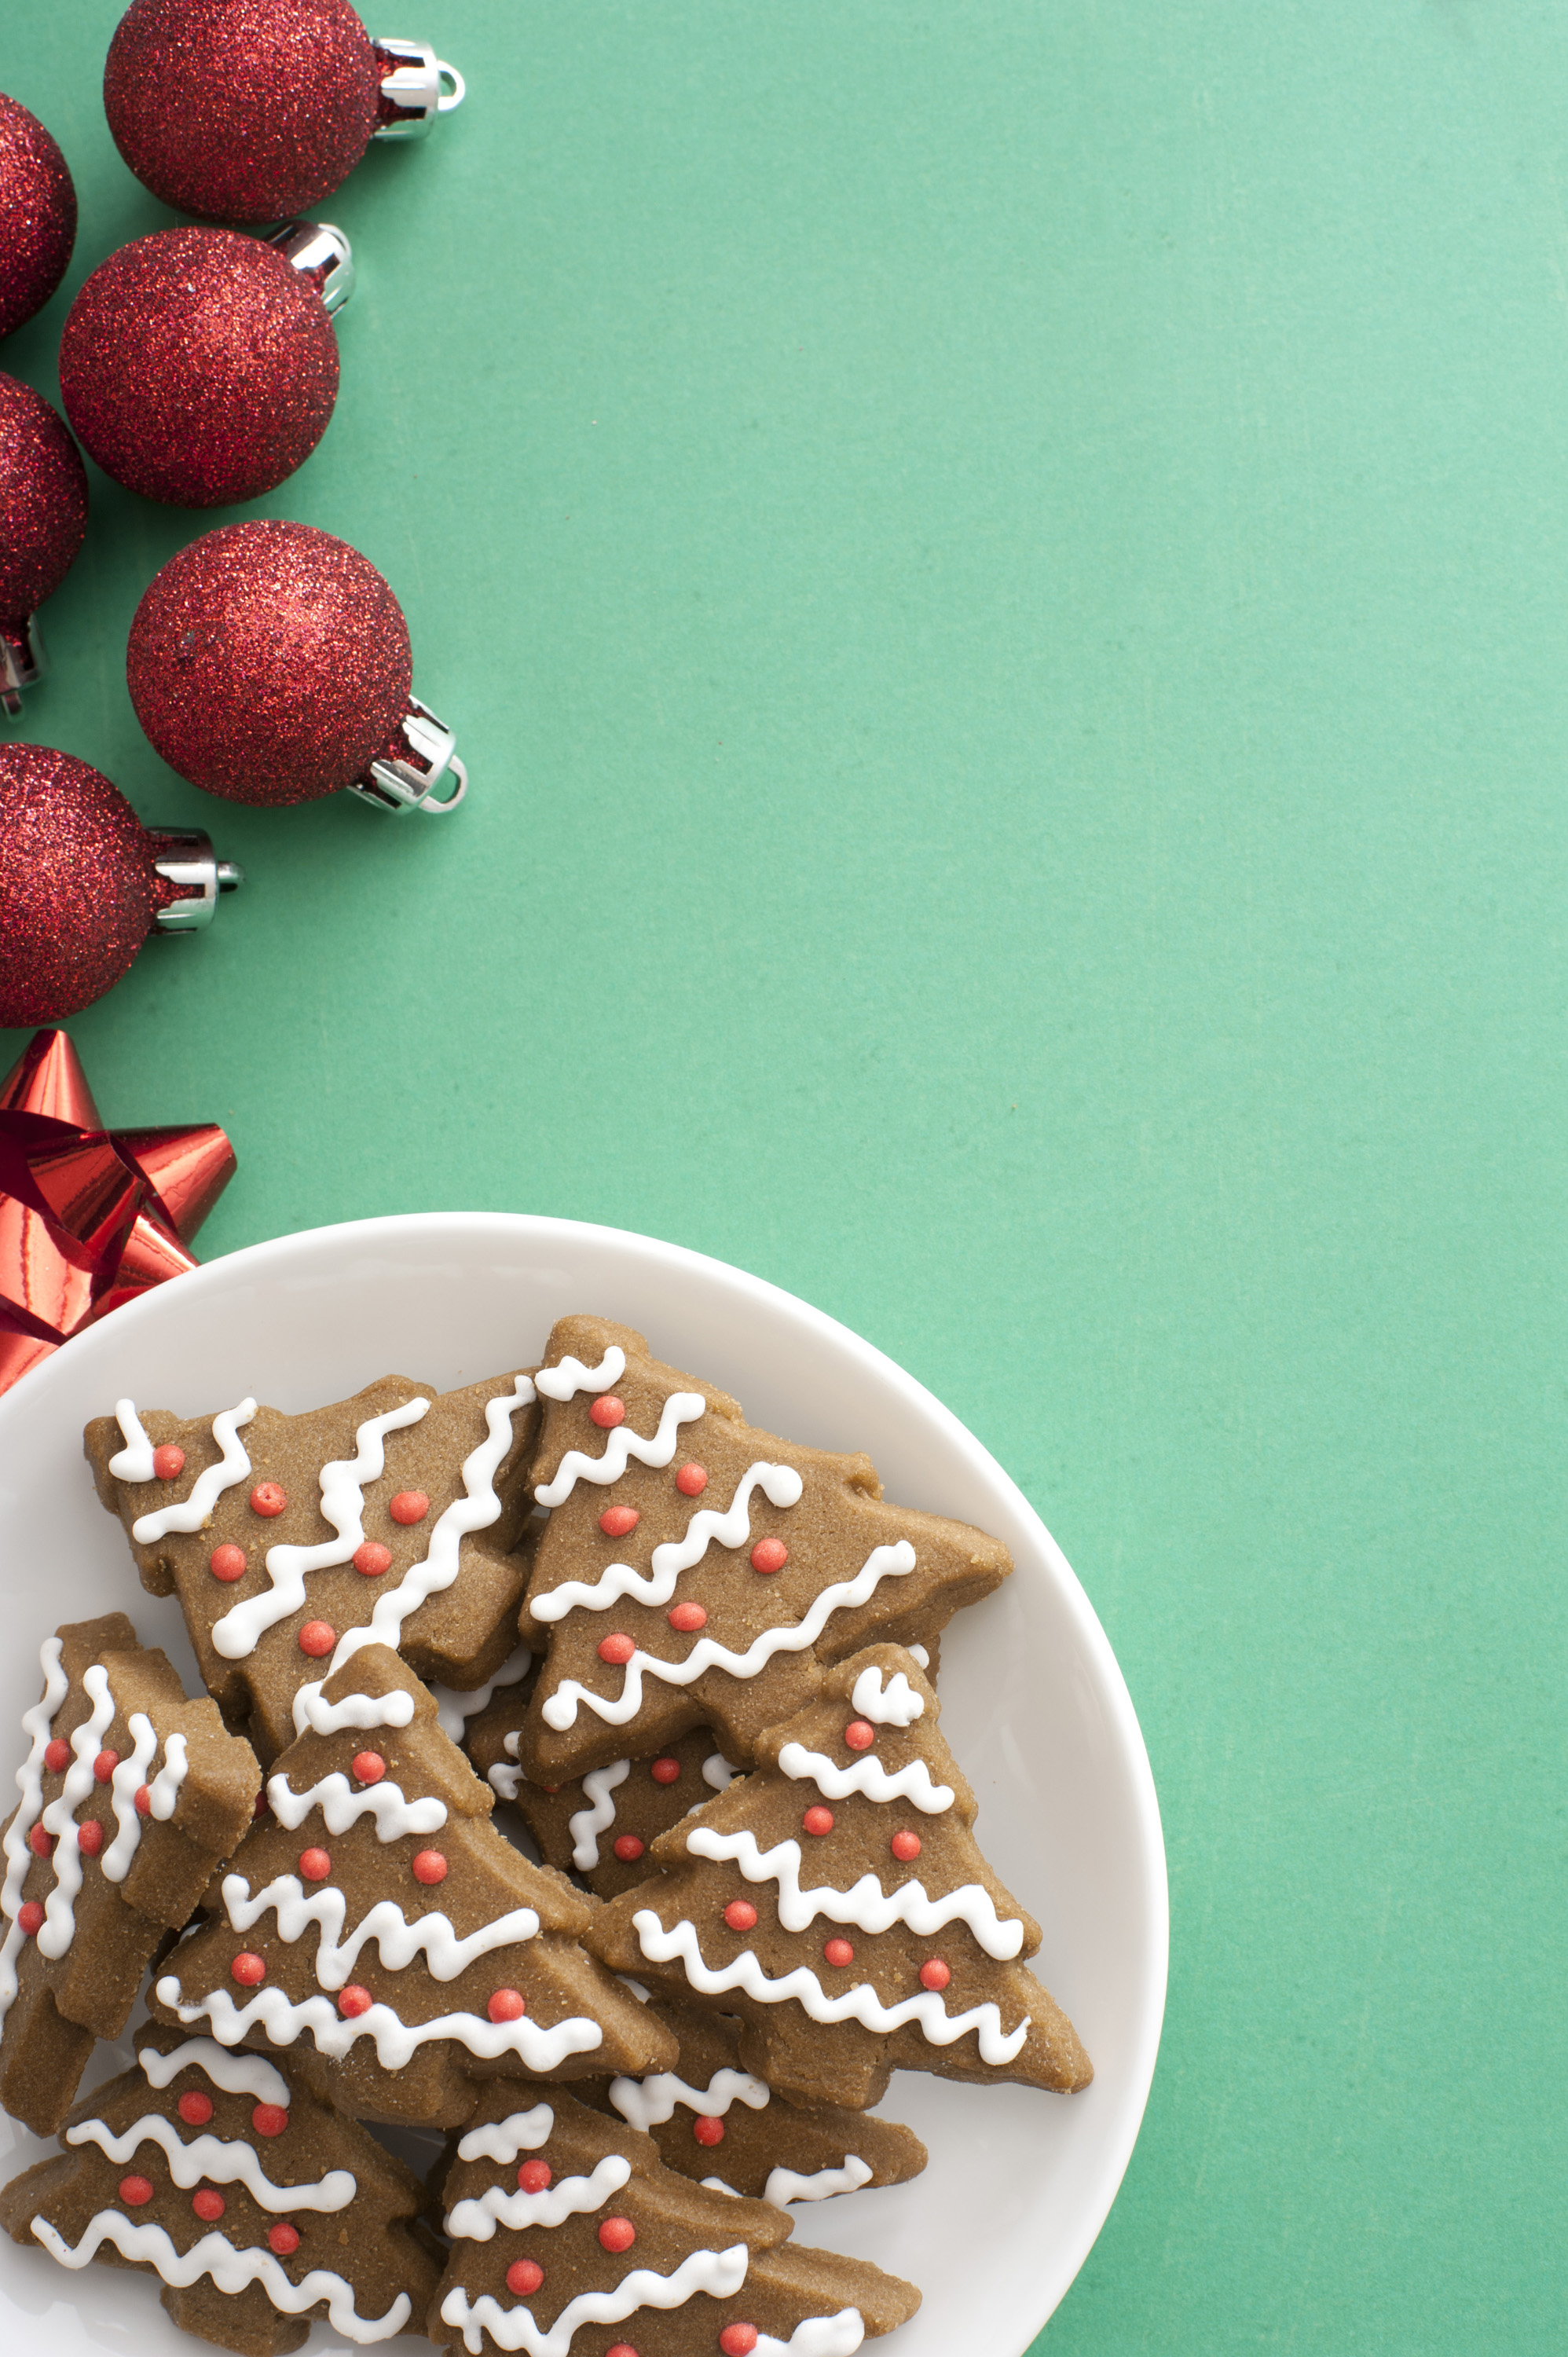 Find A Code >> Photo of Iced gingerbread cookies for Christmas | Free